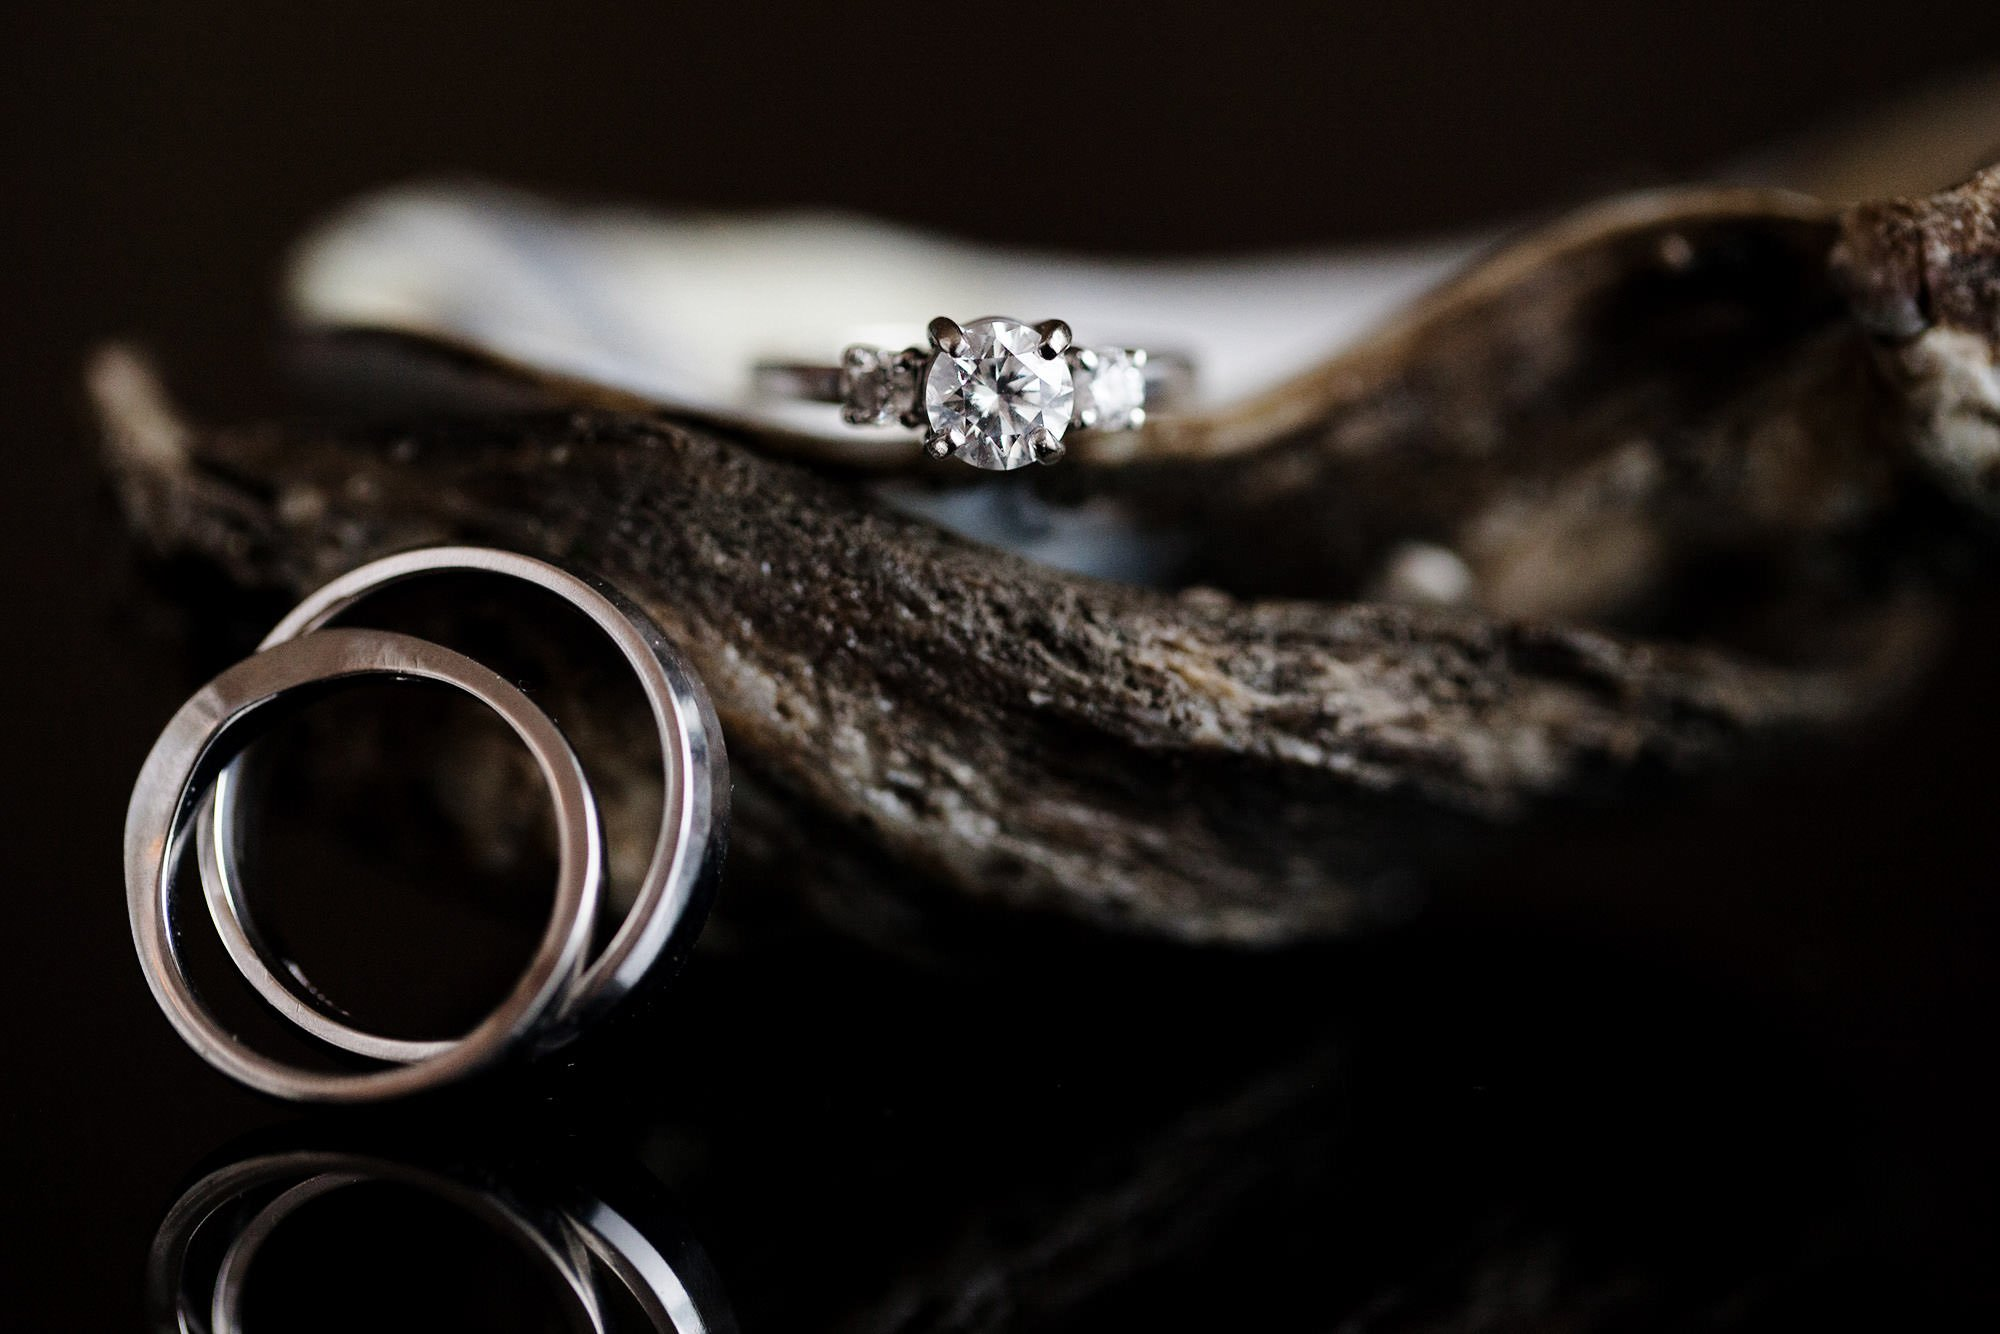 A ring detail in an oyster shell.